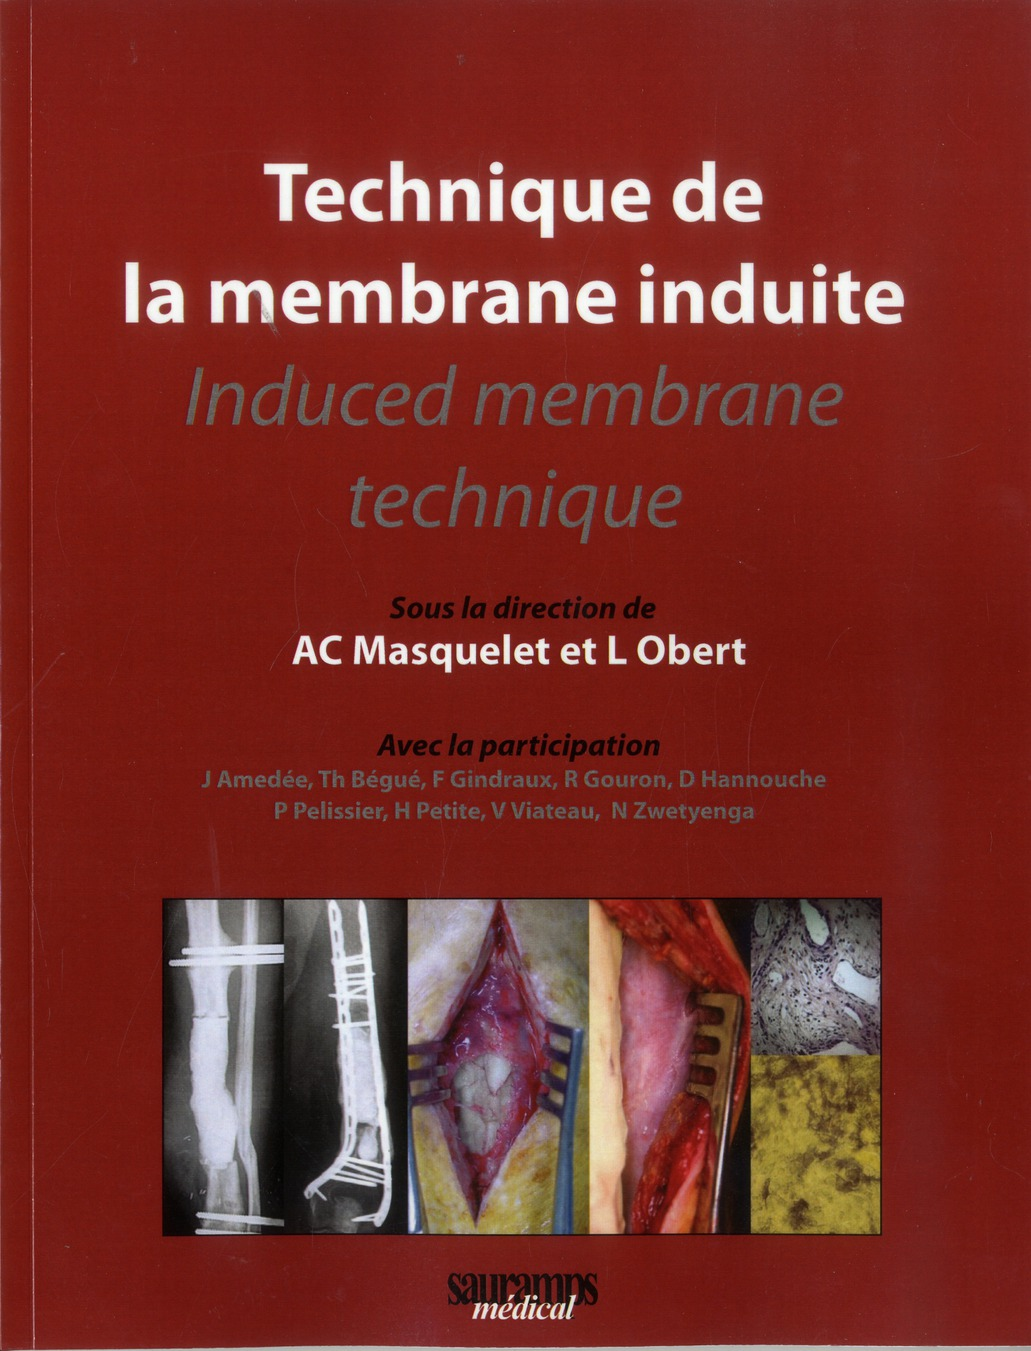 Technique De La Membrane Induite - Induced Membrane Technique